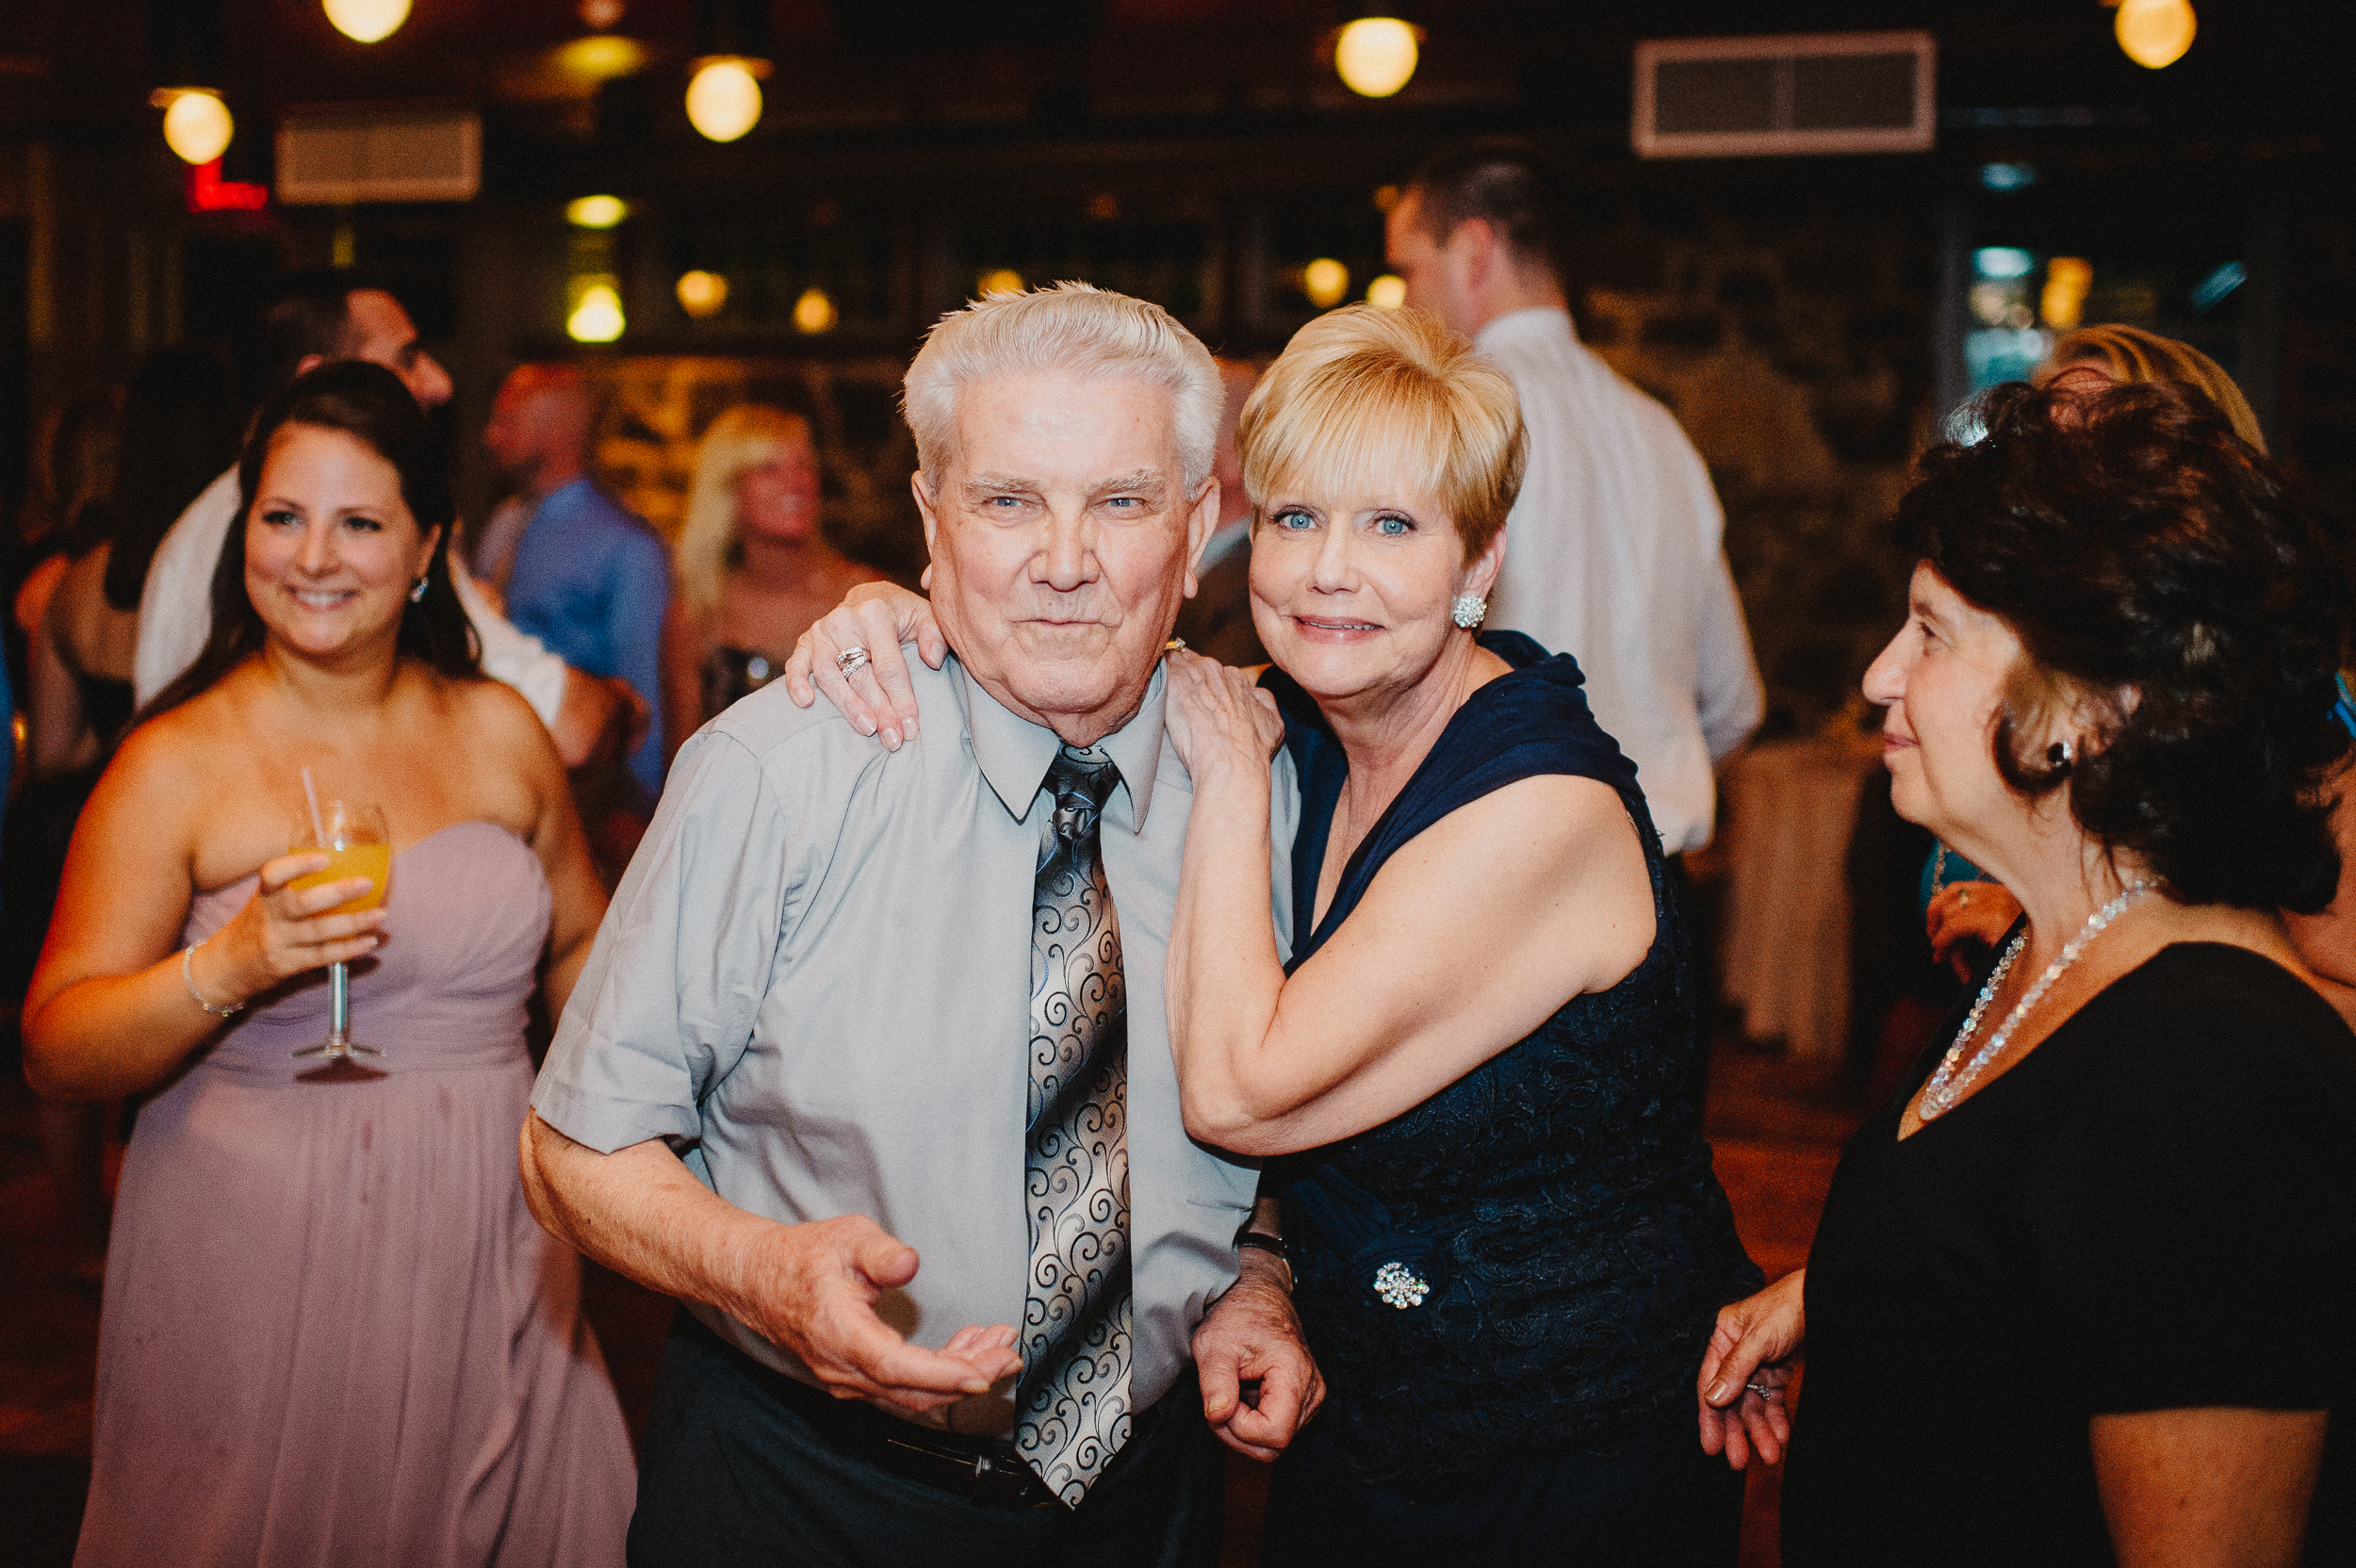 pat-robinson-photography-rockwood-carriage-house-wedding-photographer-83.jpg